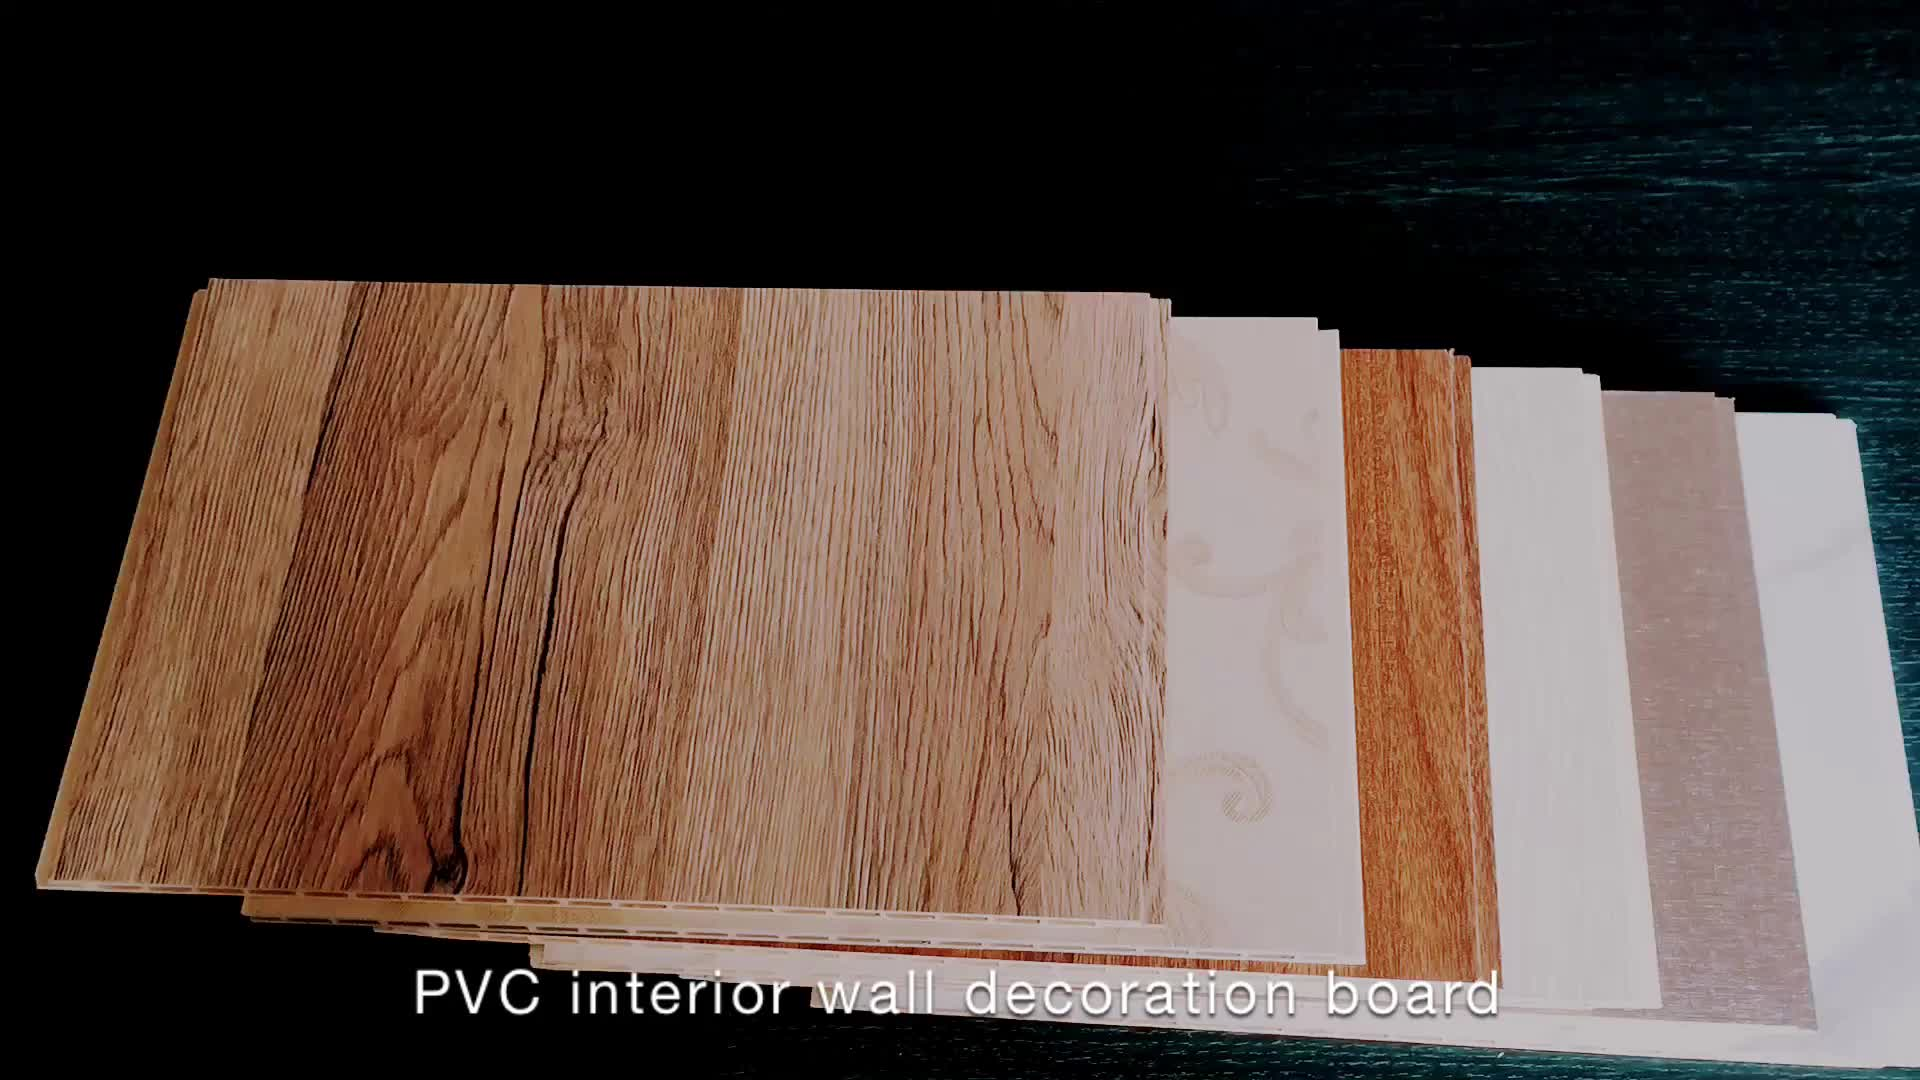 Decorative Ceiling Covering Panels Wpc Faux Wood Pvc Wall